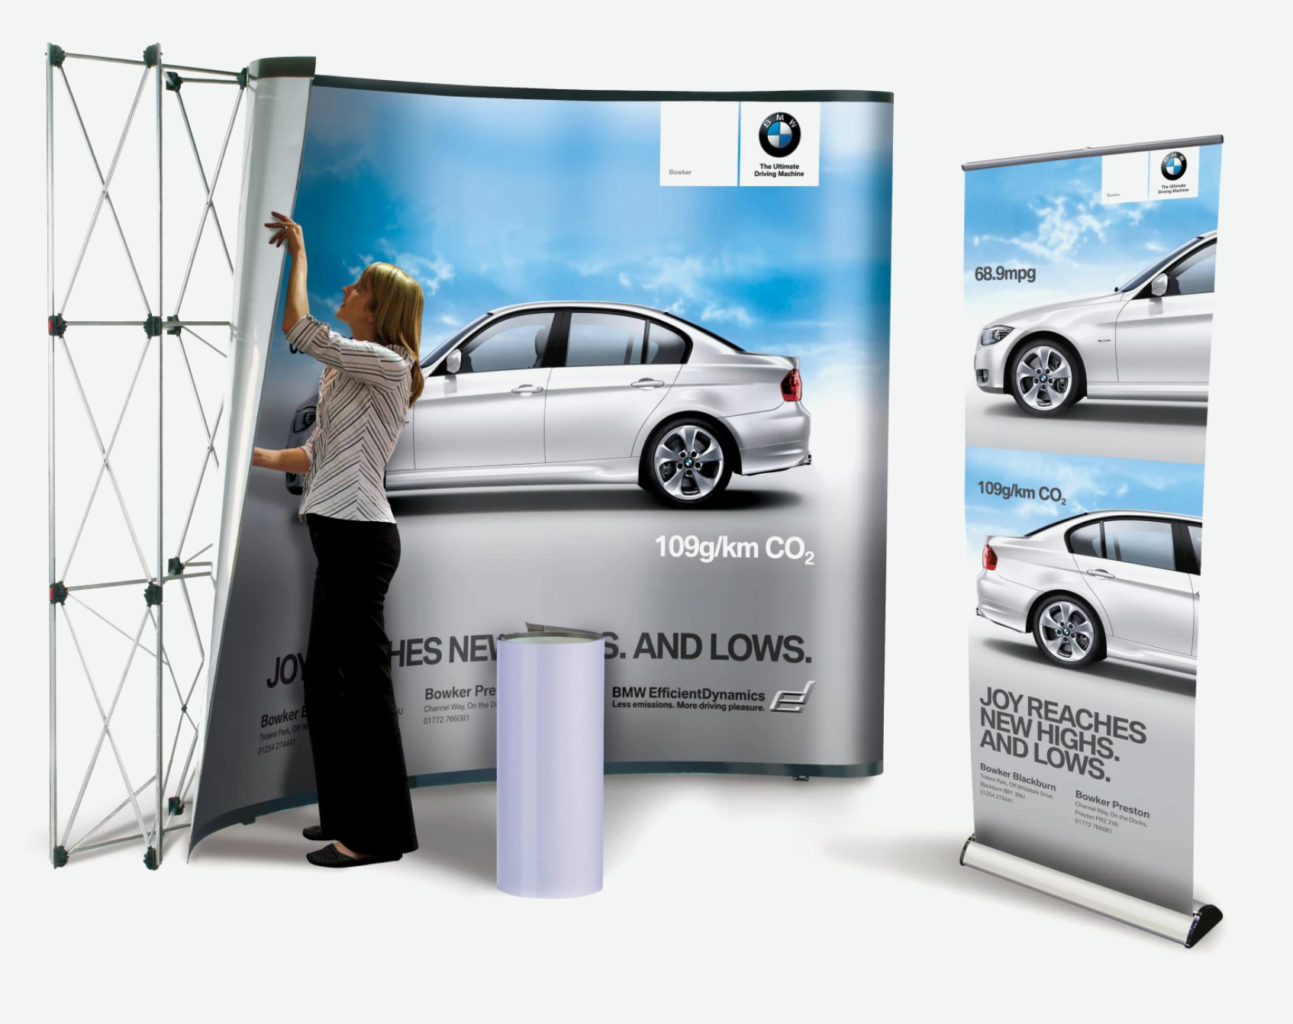 Putting up an exhibition stand